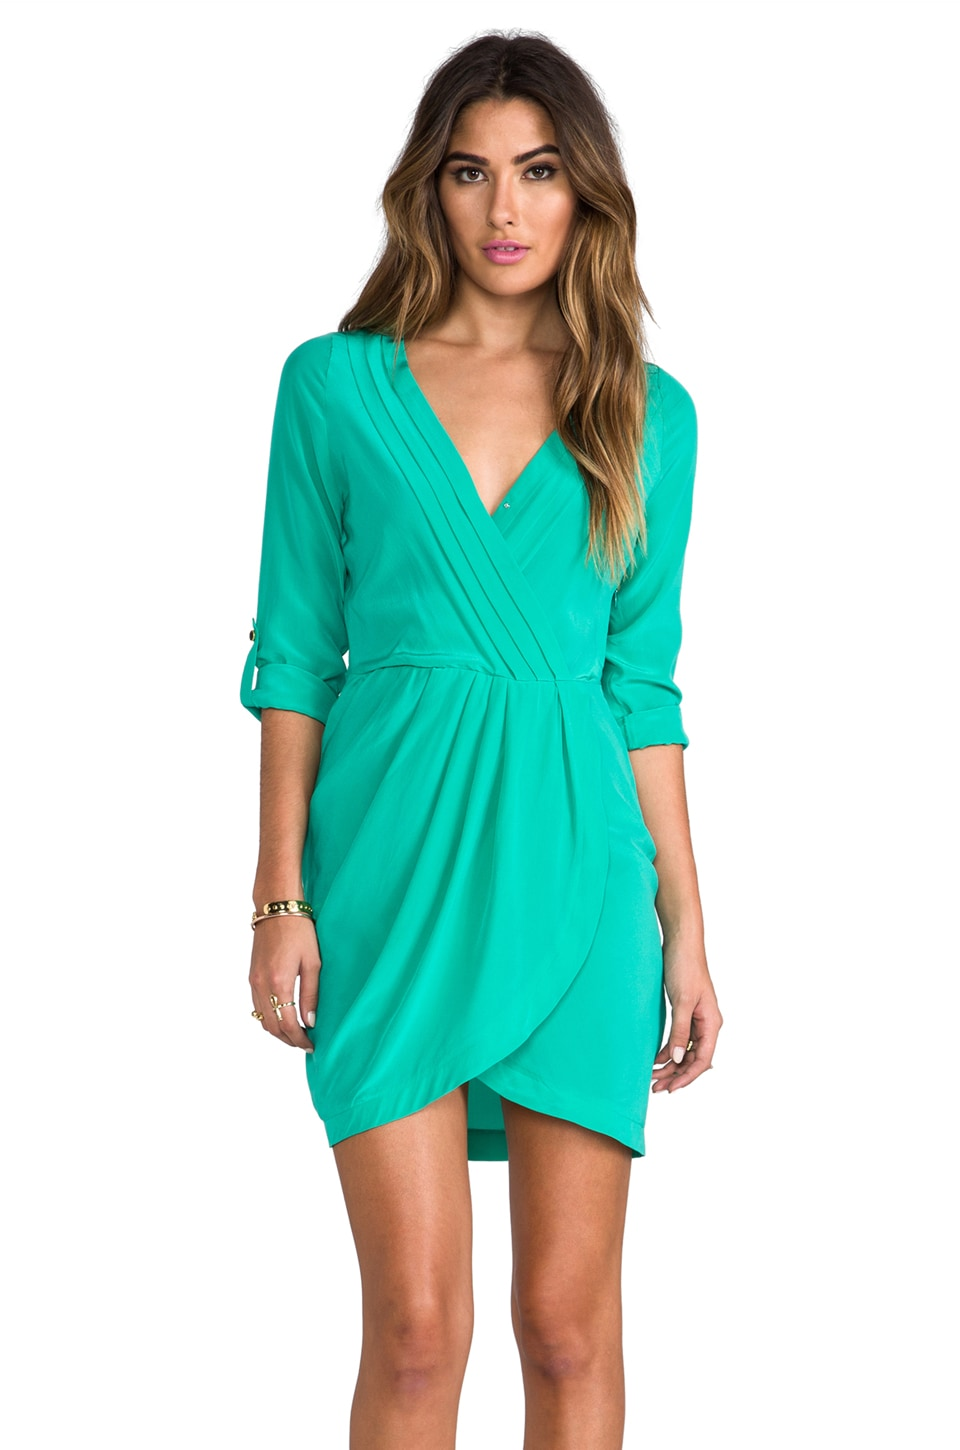 Yumi Kim Alexis Dress in Jade